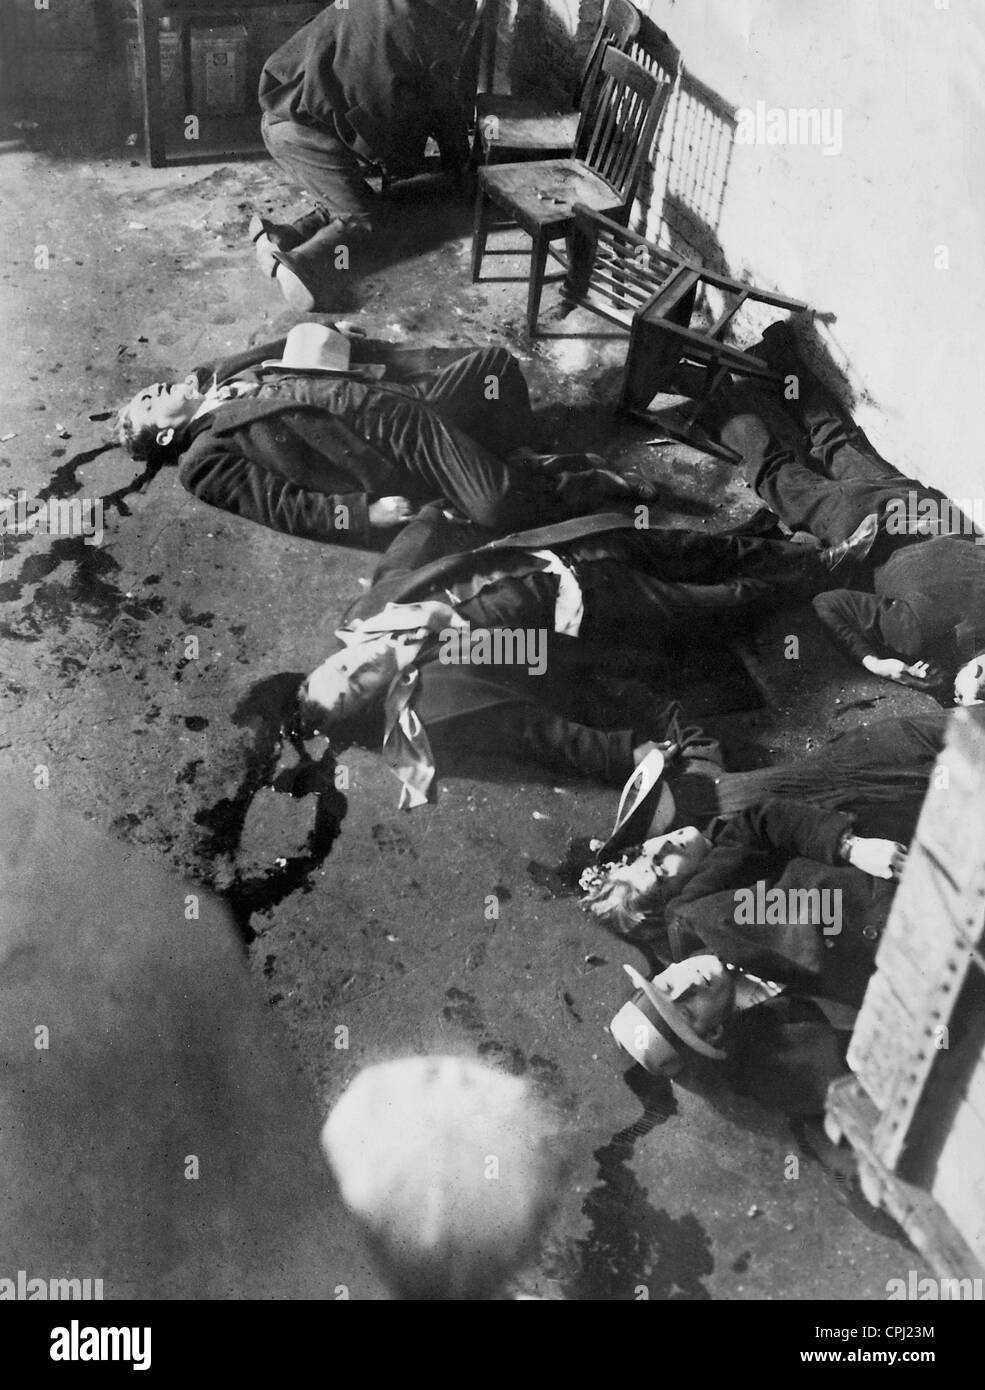 Corpses Of The Valentine S Day Massacre In Chicago 1929 Stock Photo